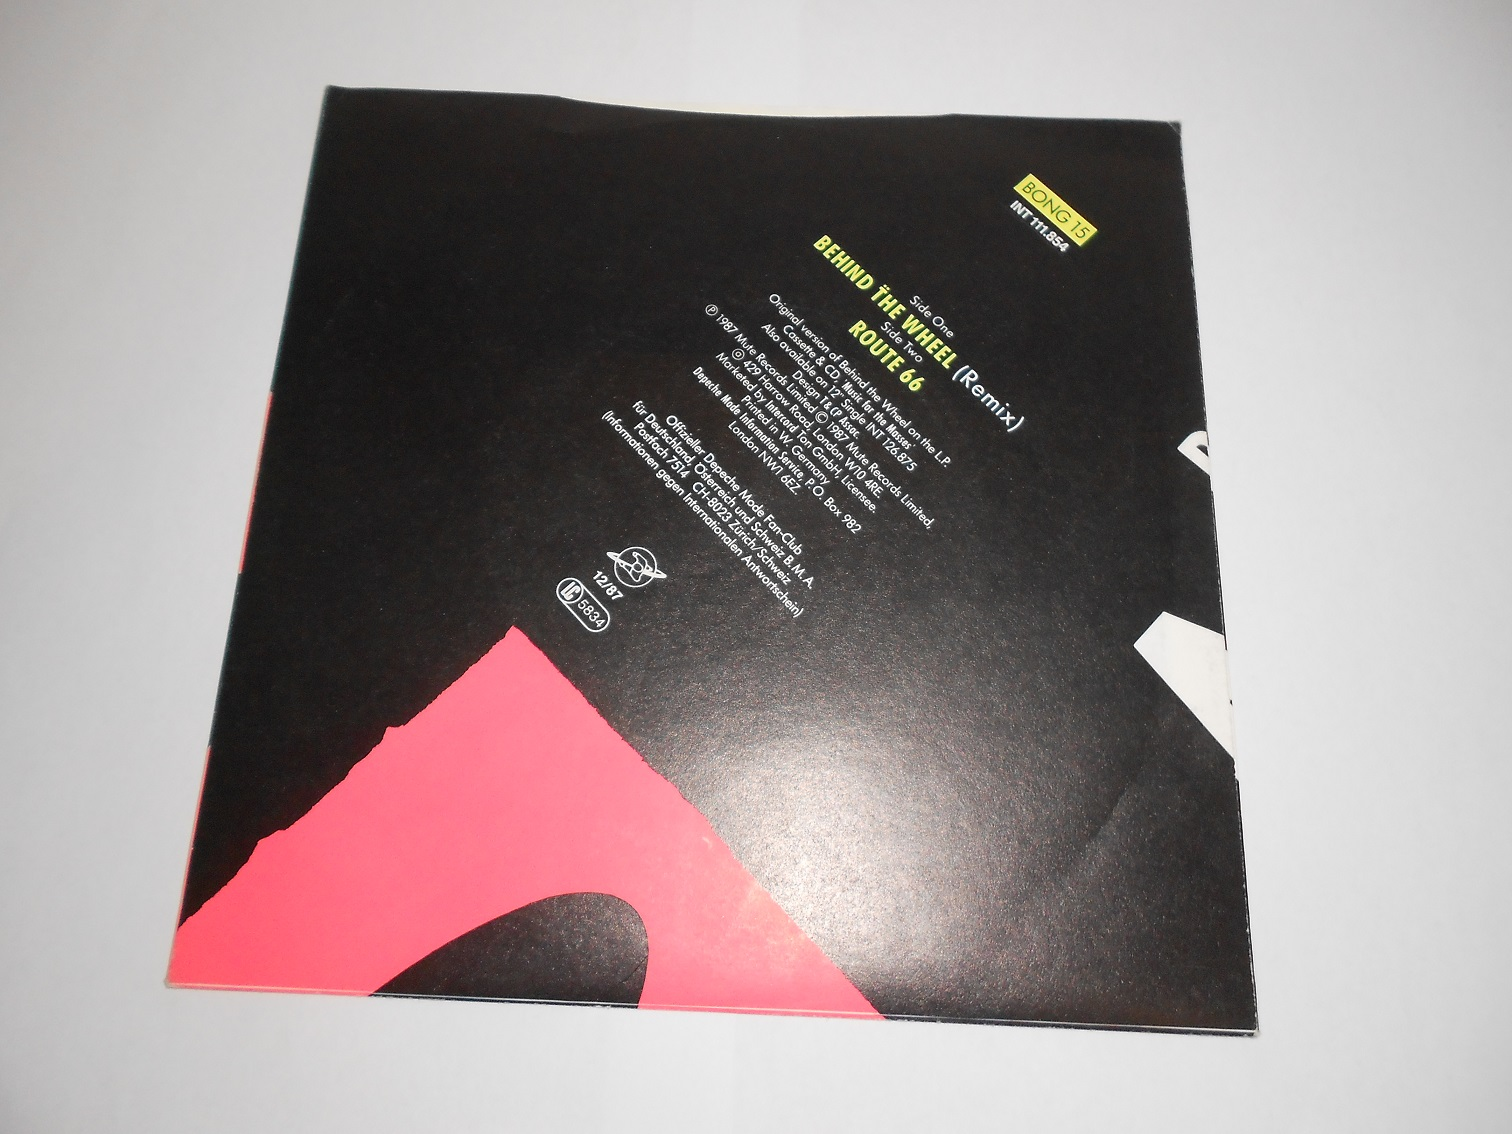 "Depeche Mode ‎– Behind T̈he Wheel (Remix) (7"",Single)"